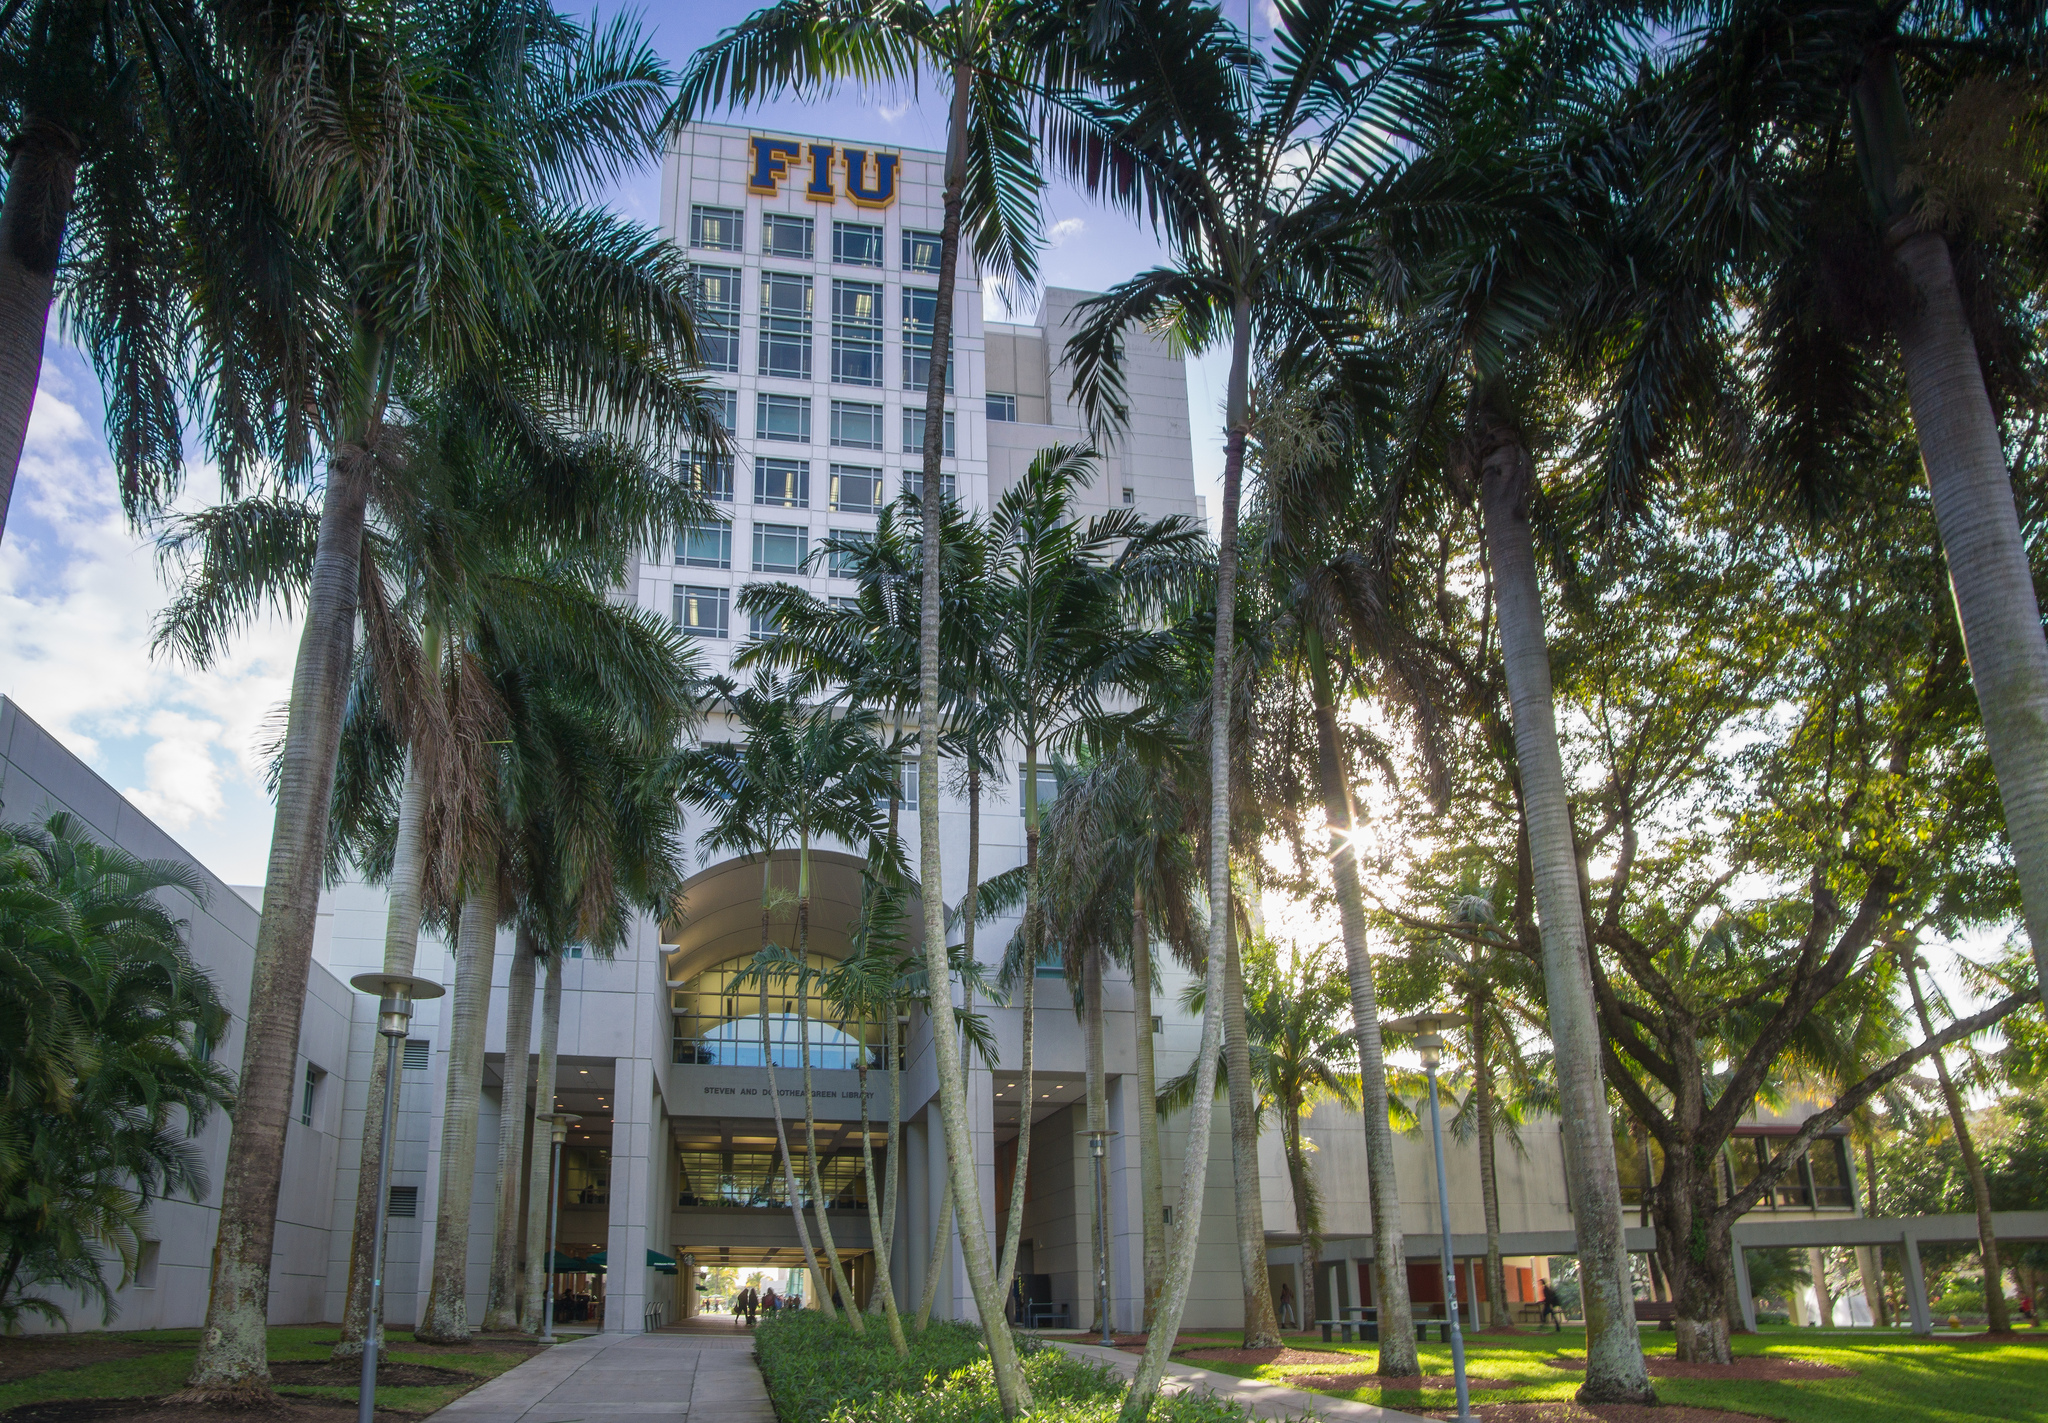 FIU achieves top rank in Carnegie research classification